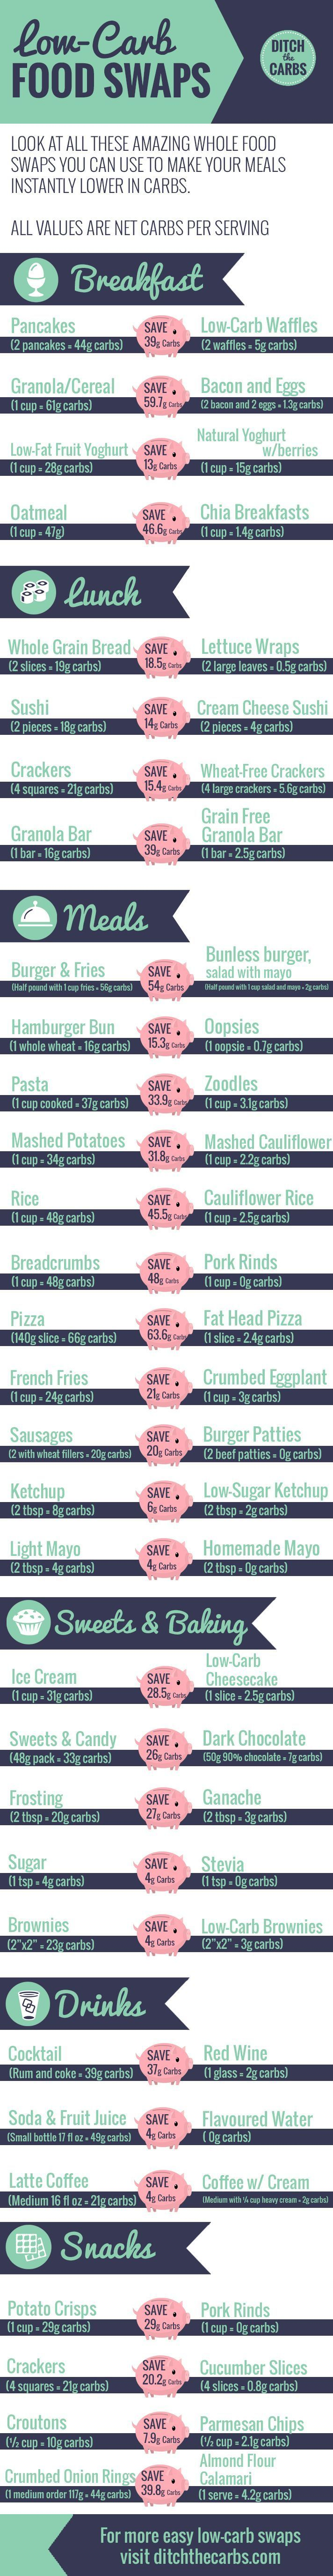 536 best How To Ditch The Carbs images on Pinterest